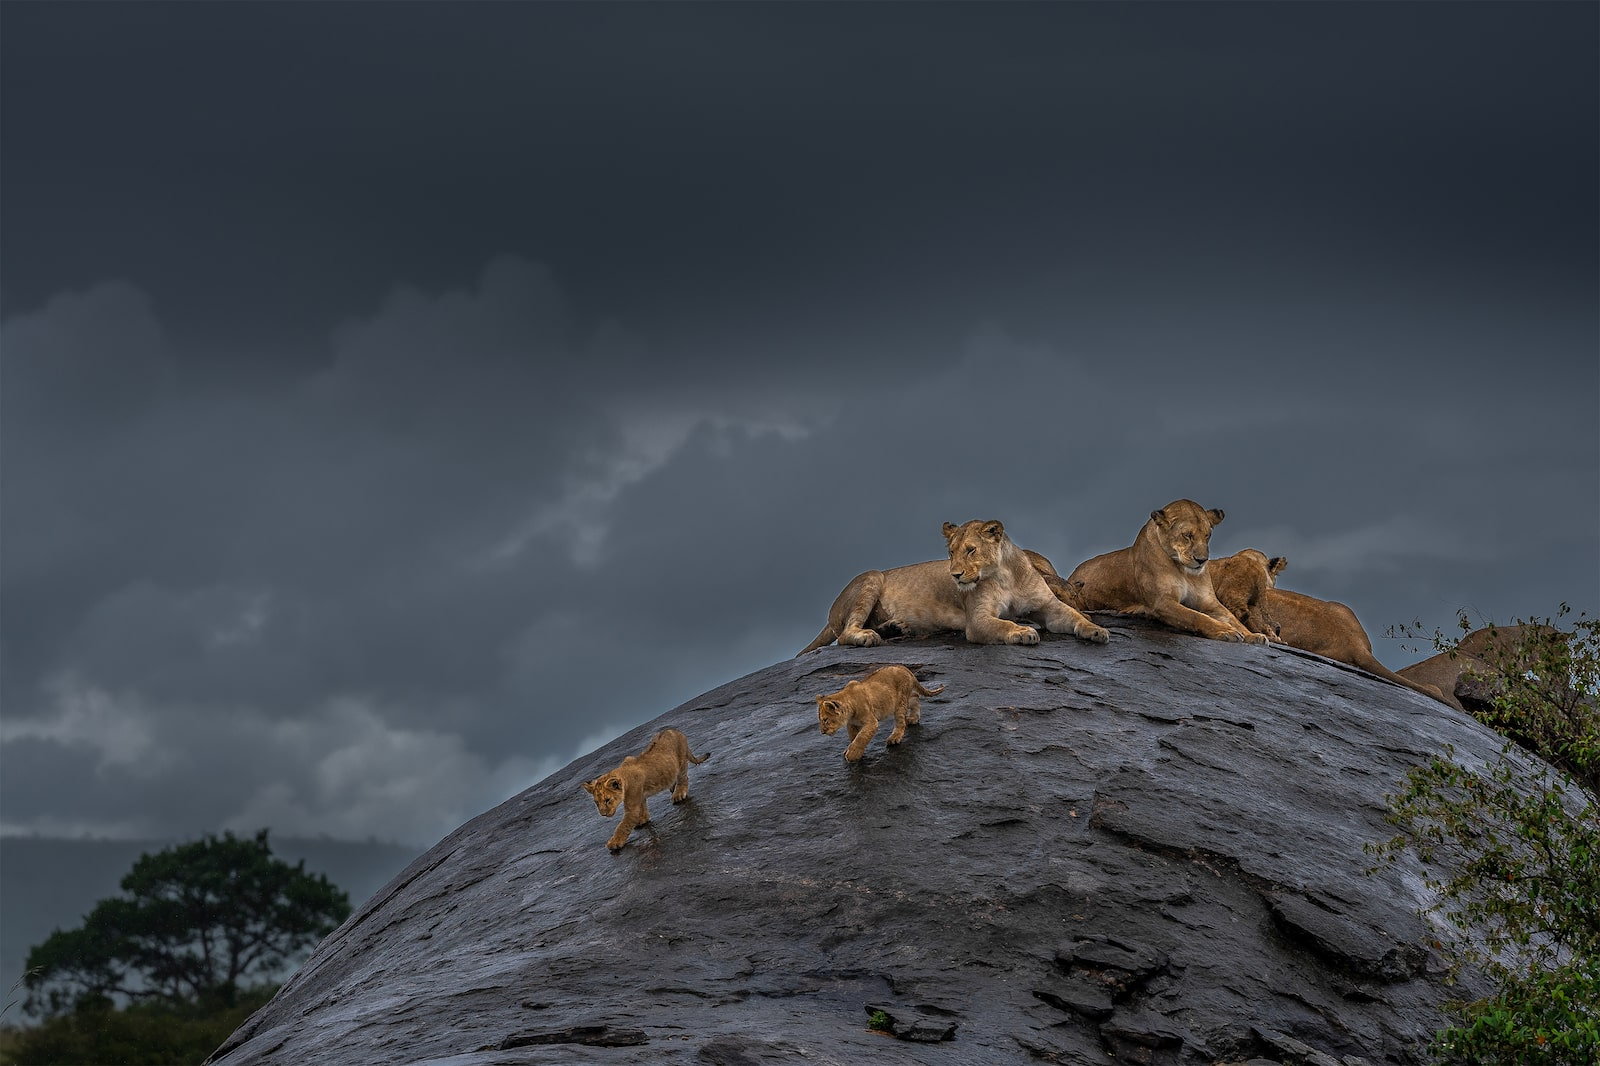 lionesses with cubs on rock alpha 7RIII